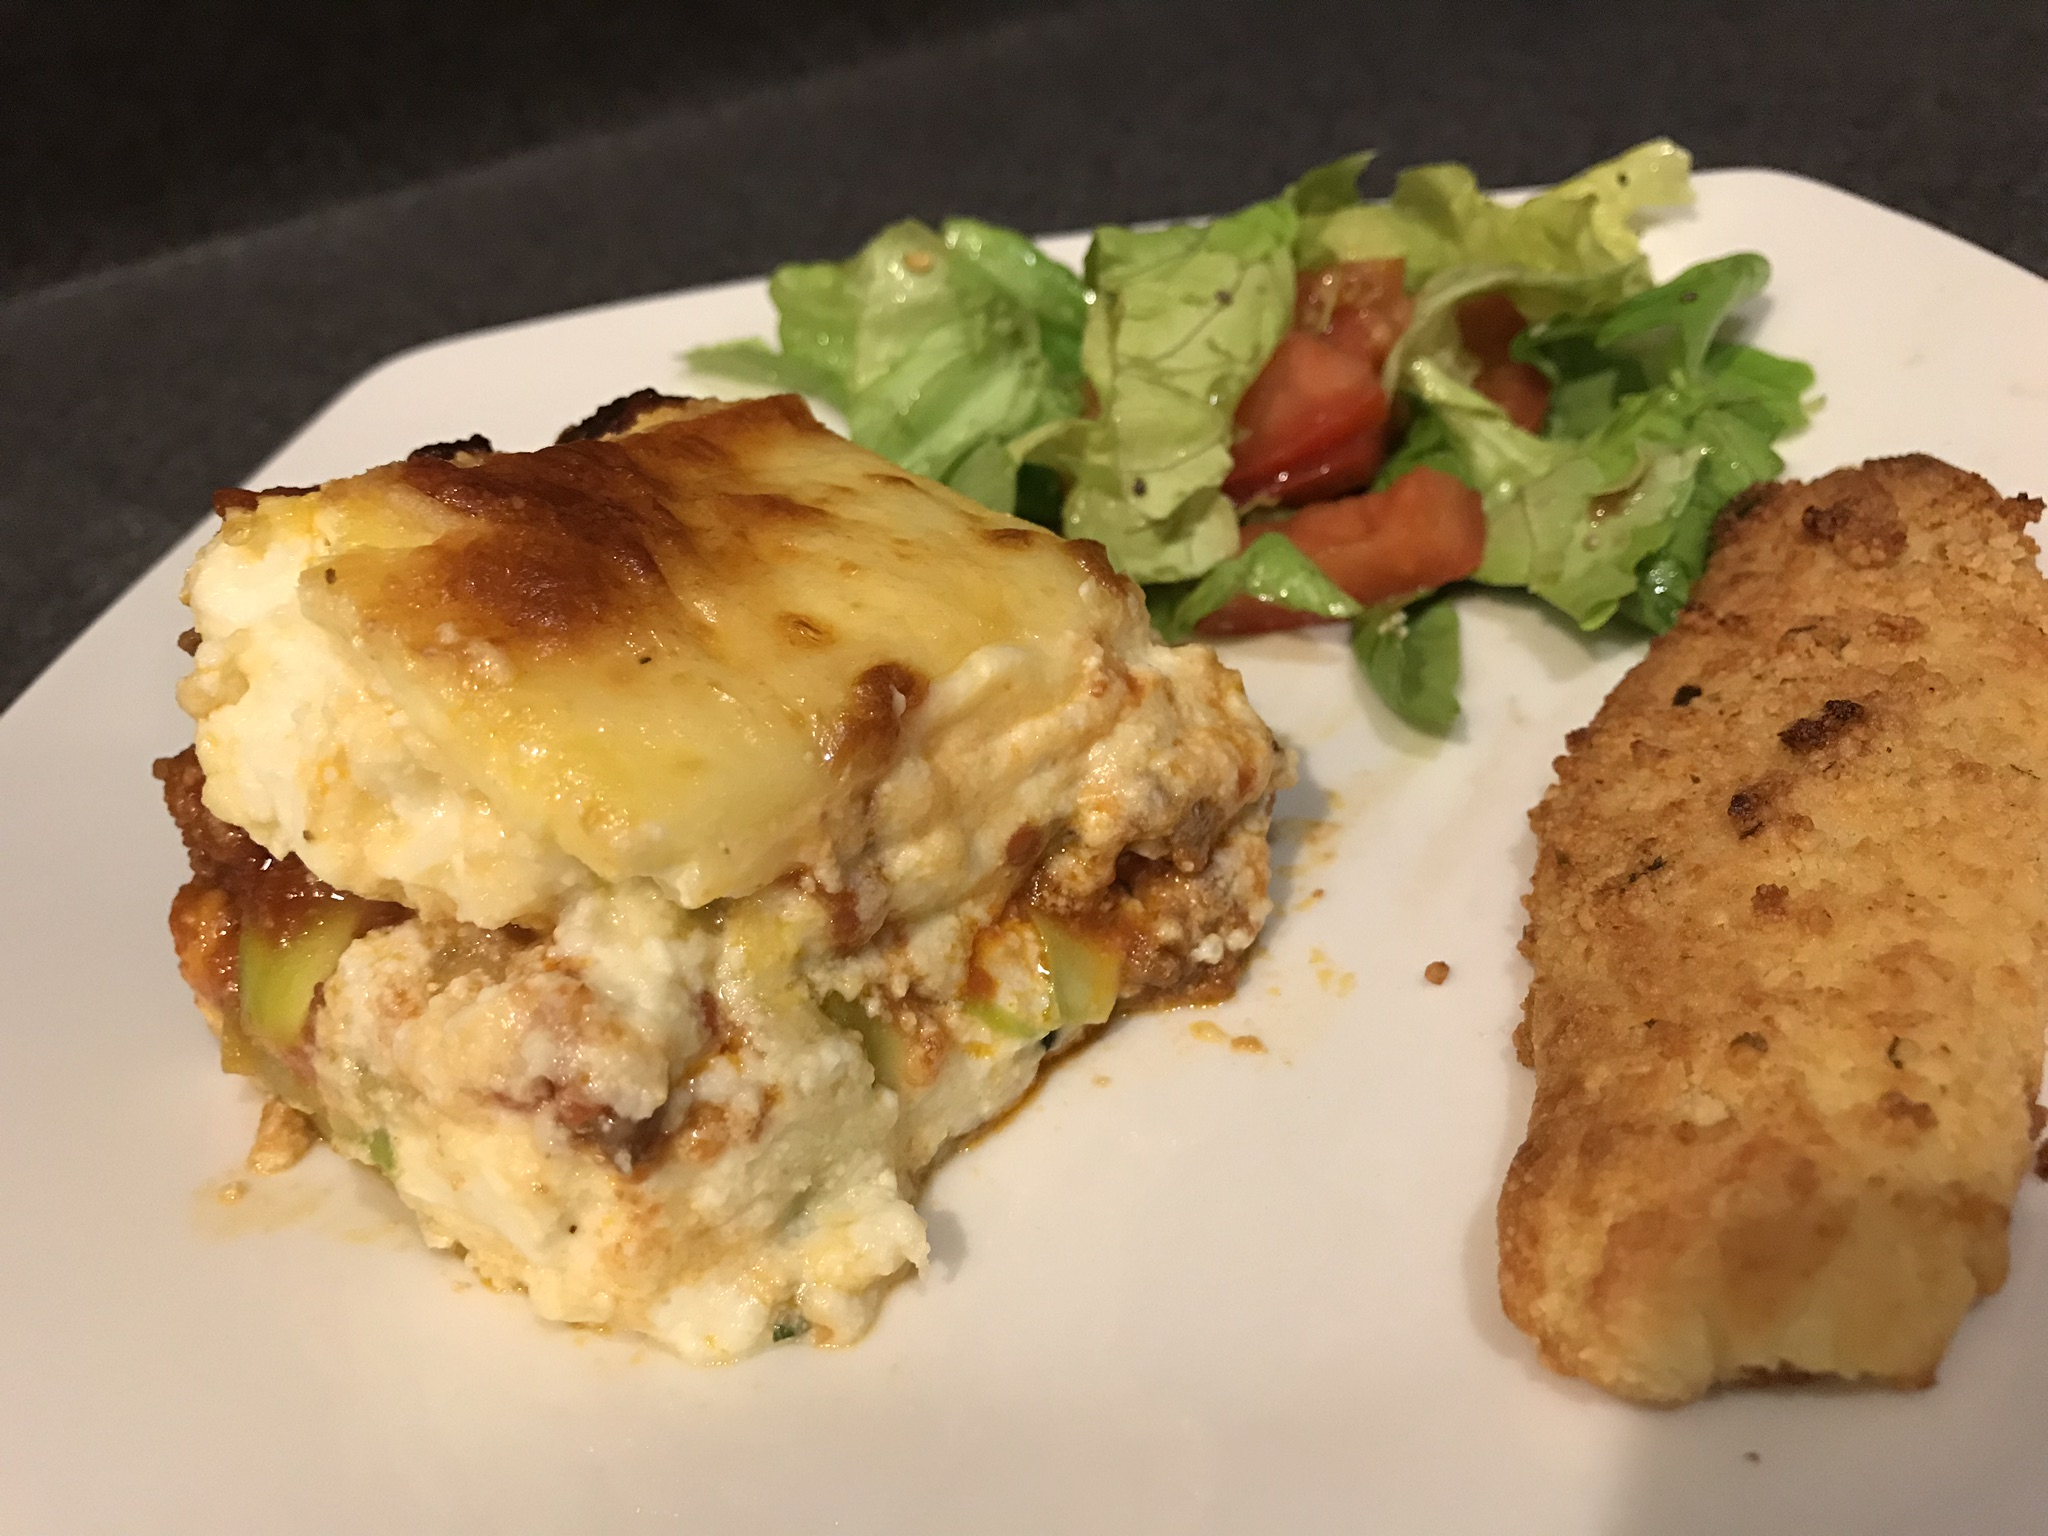 Low Carb Keto Meat & Veg Lasagna